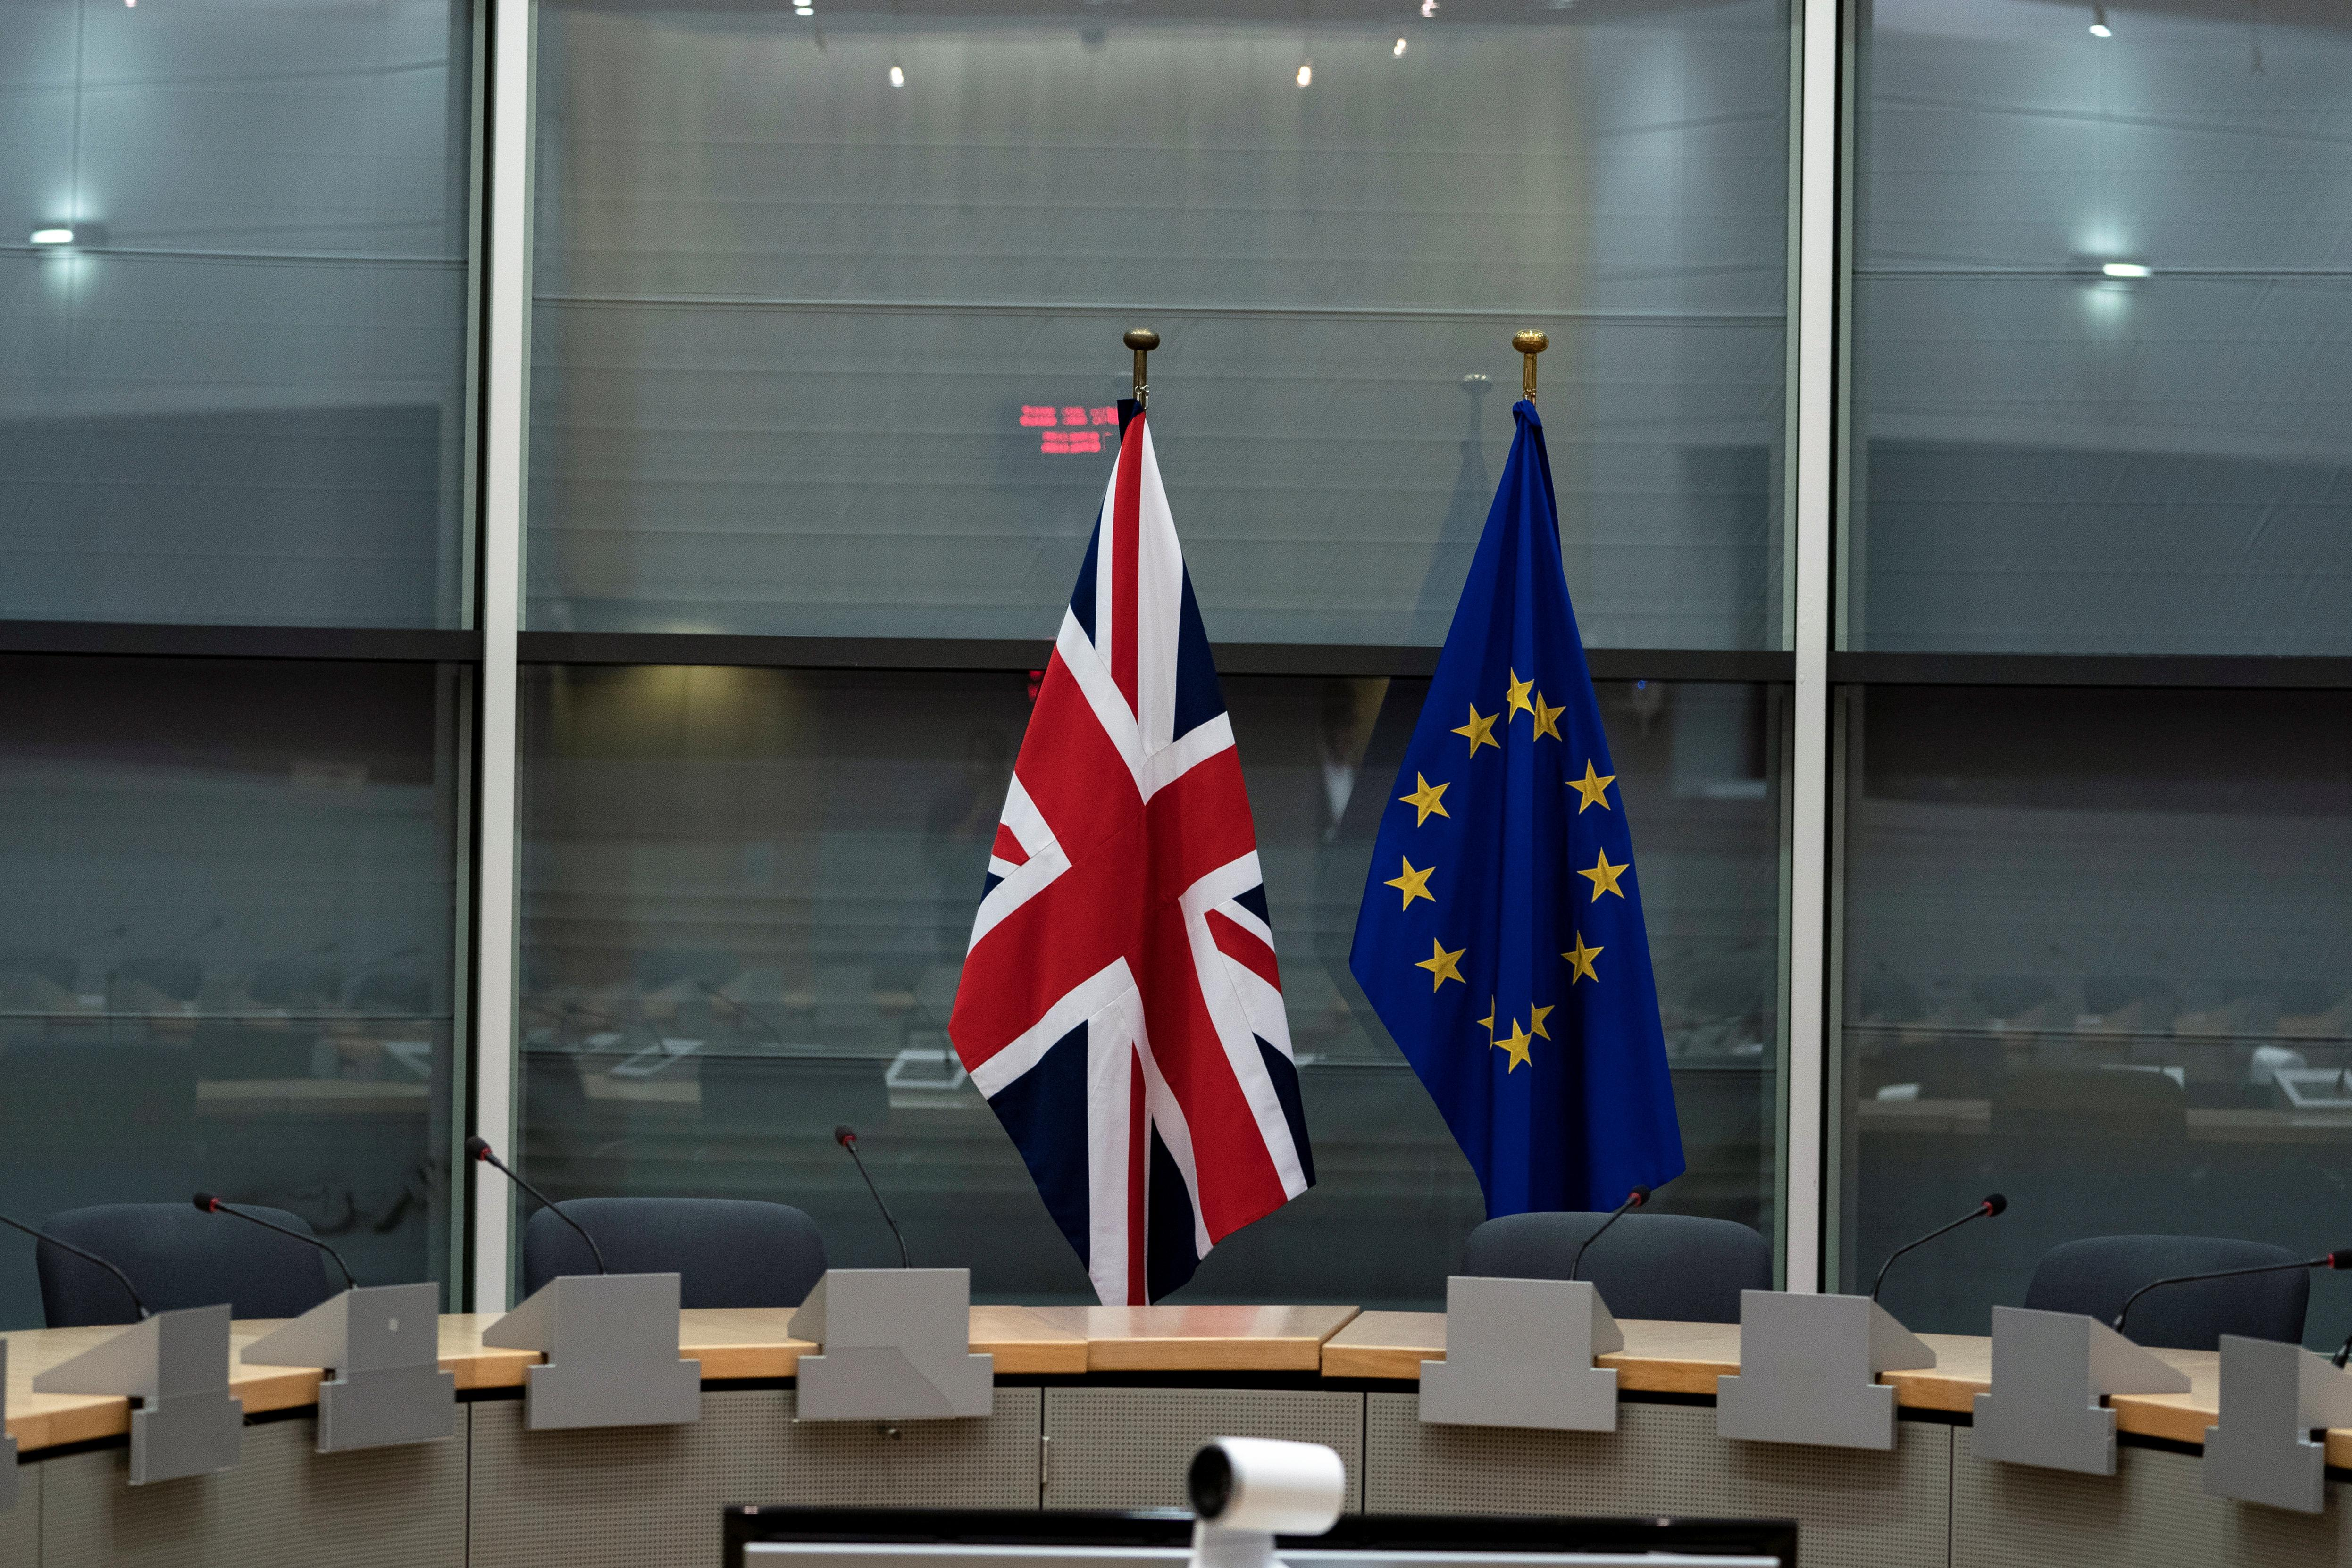 Time for EU to match Britain's Brexit compromise: PM Johnson's...